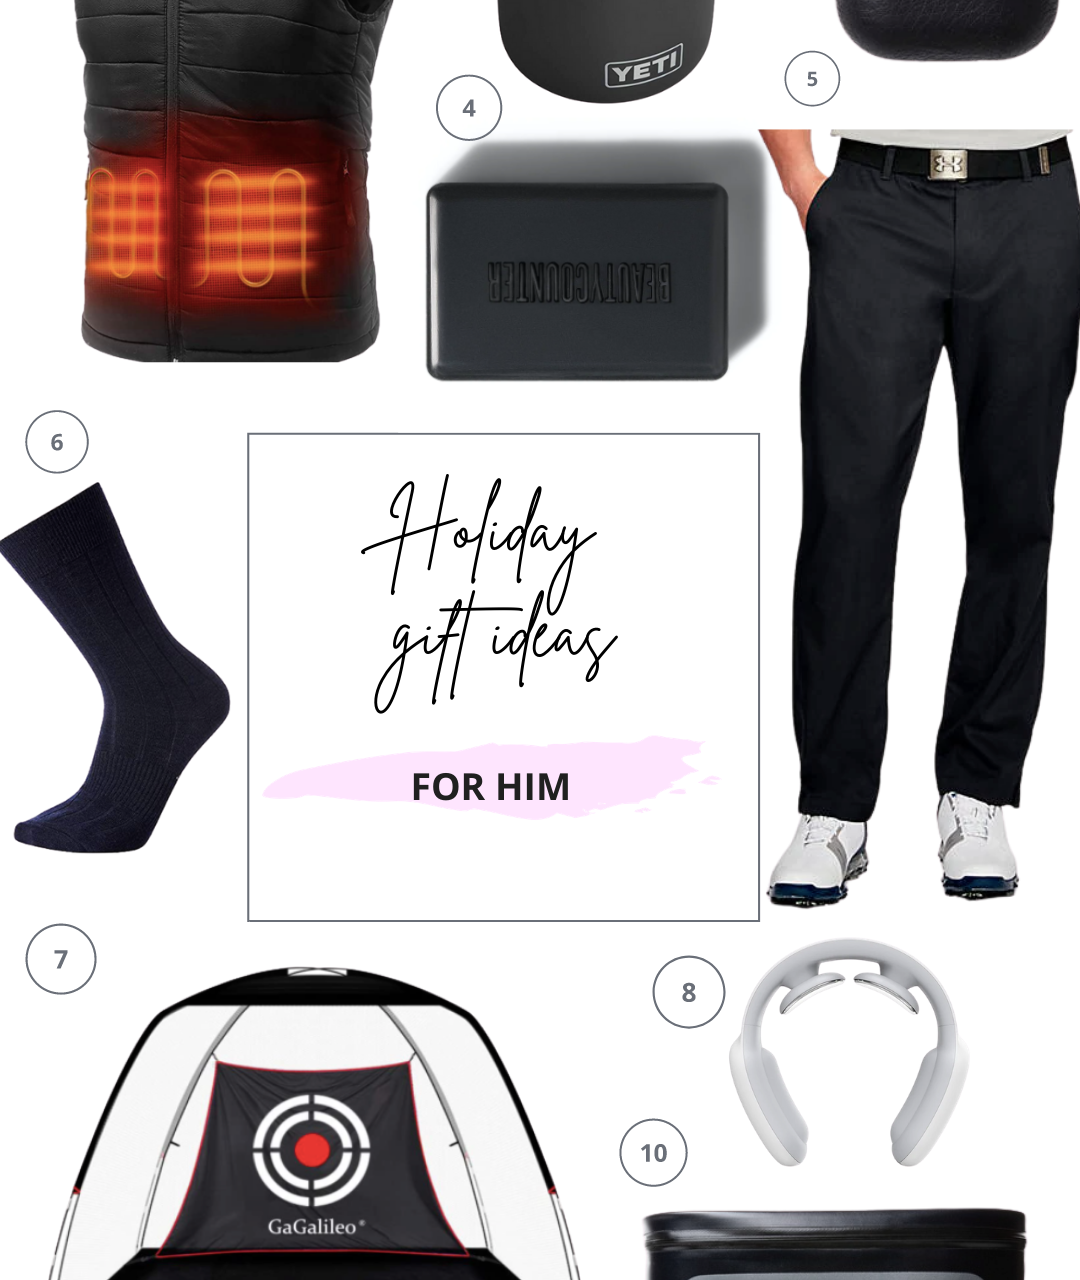 THE BEST GIFT IDEAS FOR HIM 2020